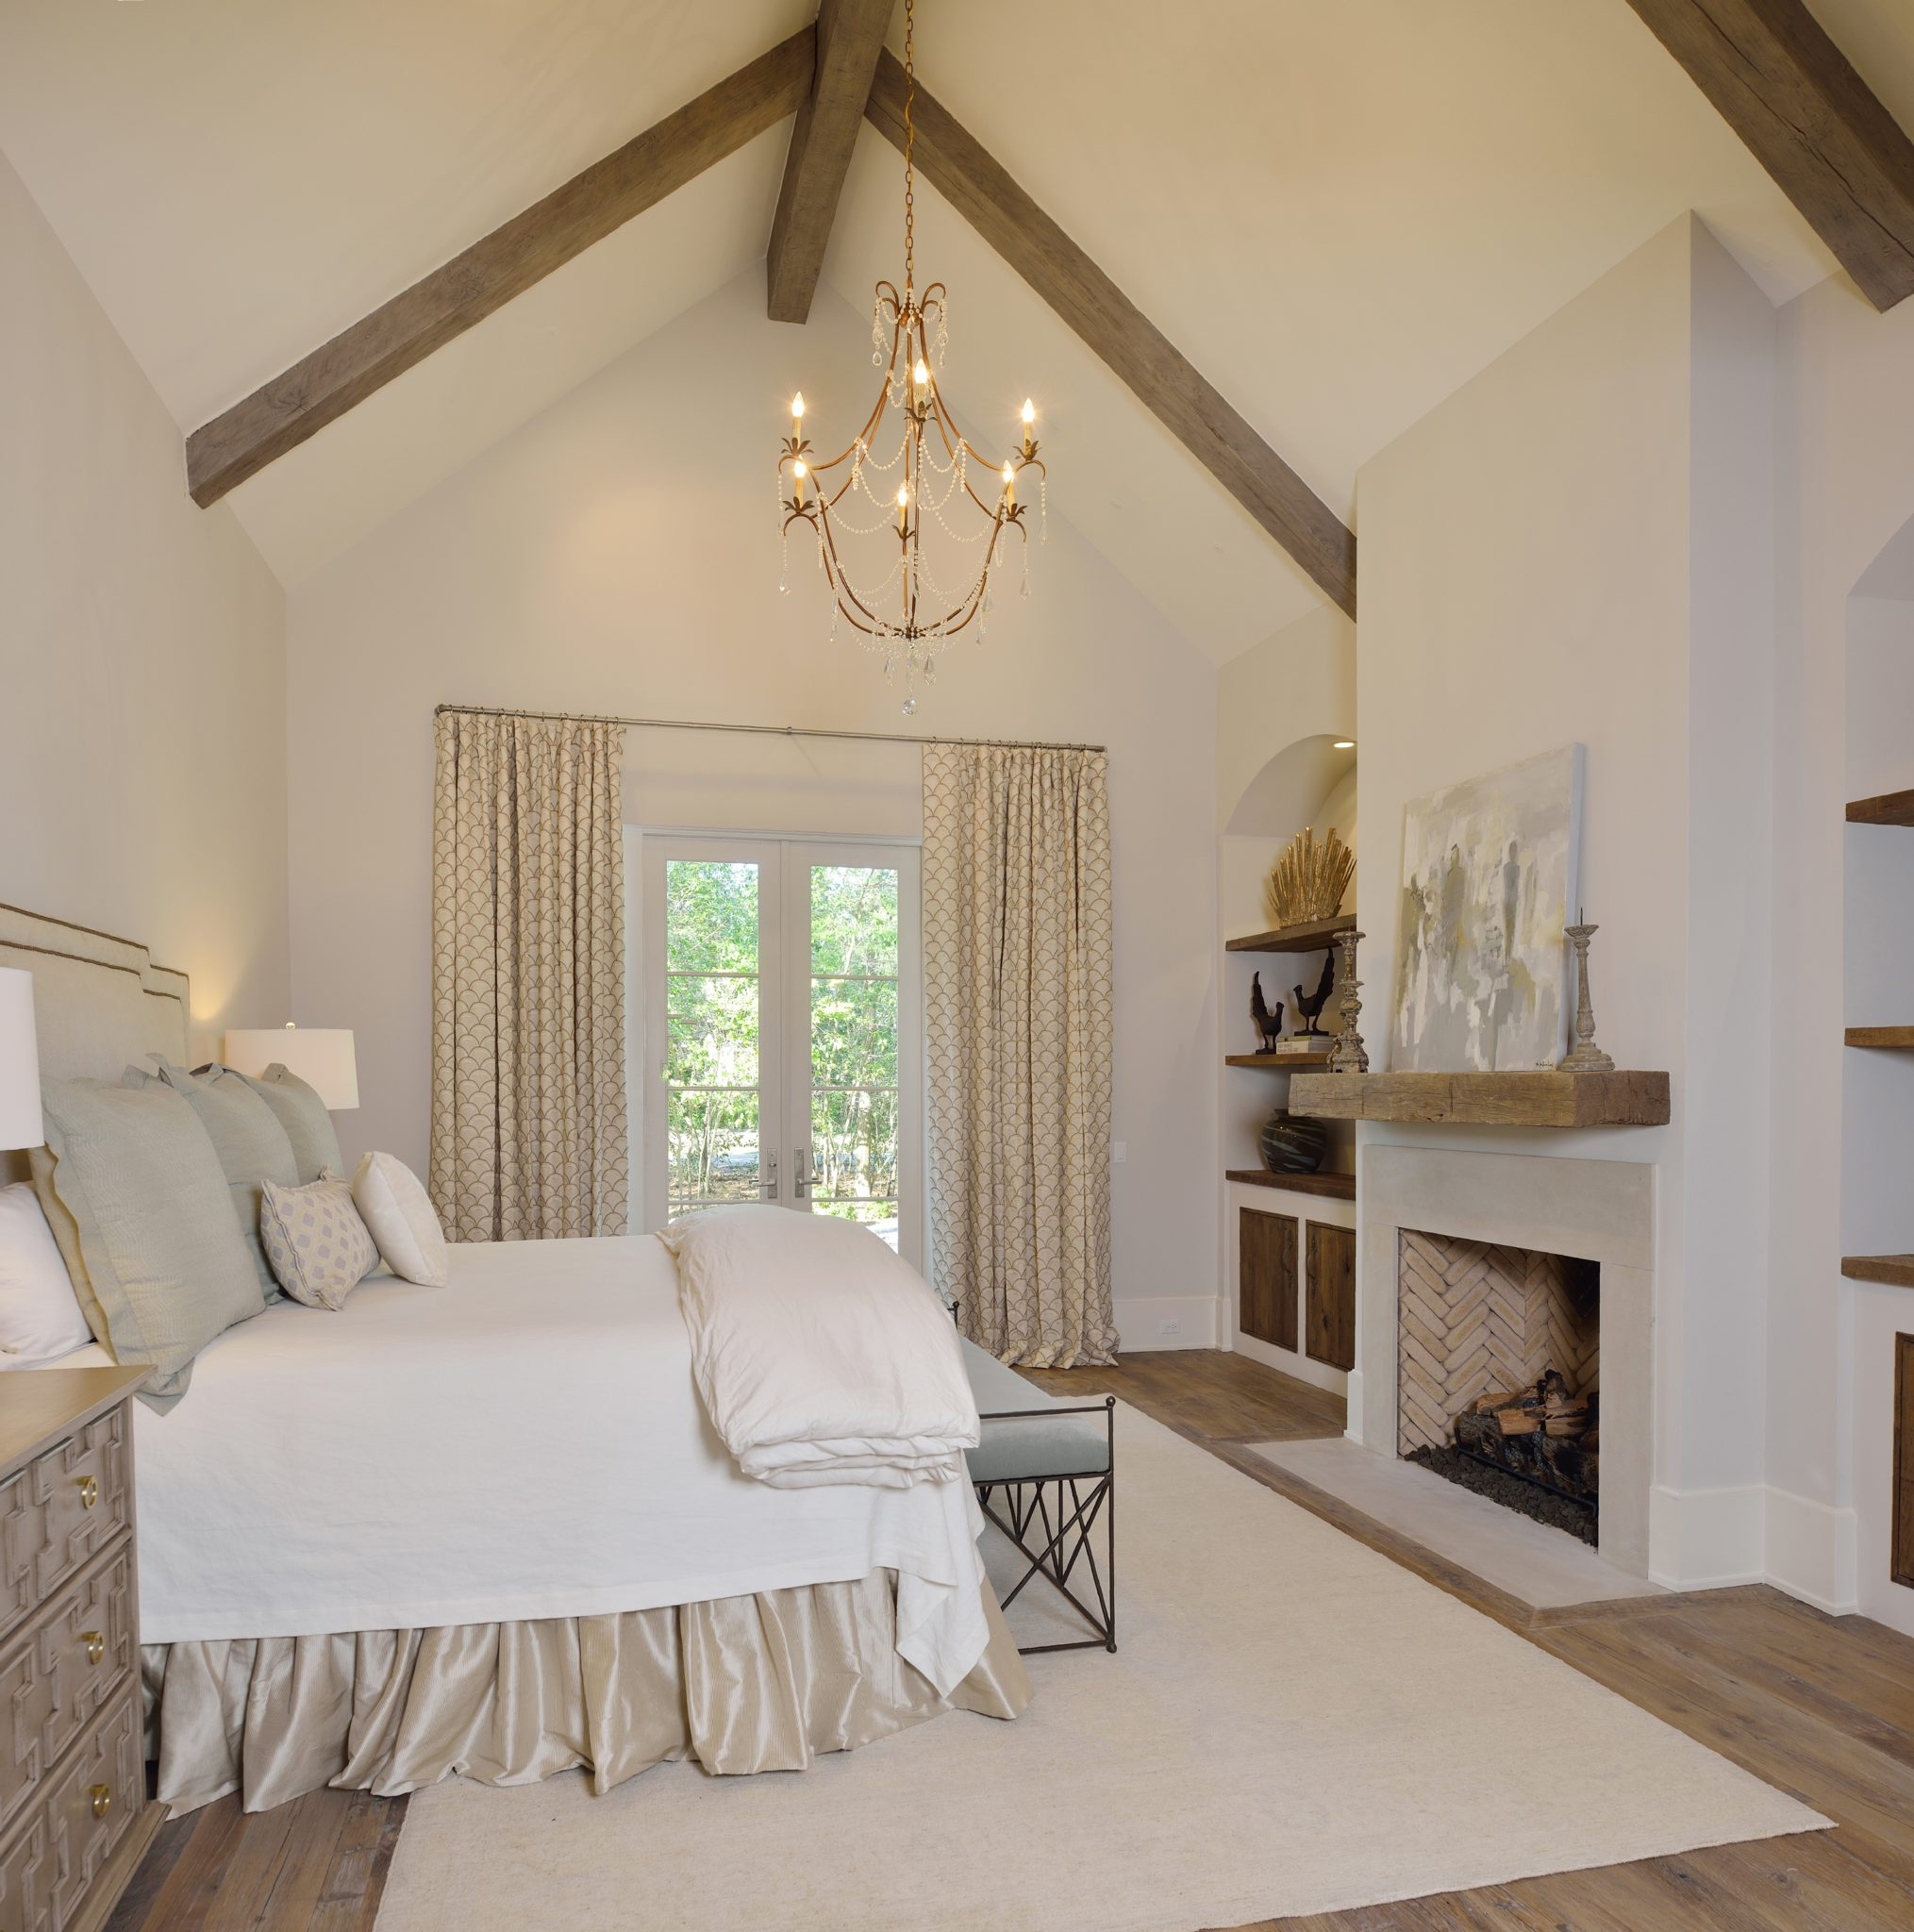 Mockingbird master bedroom retreat by Cindy Witmer Designs